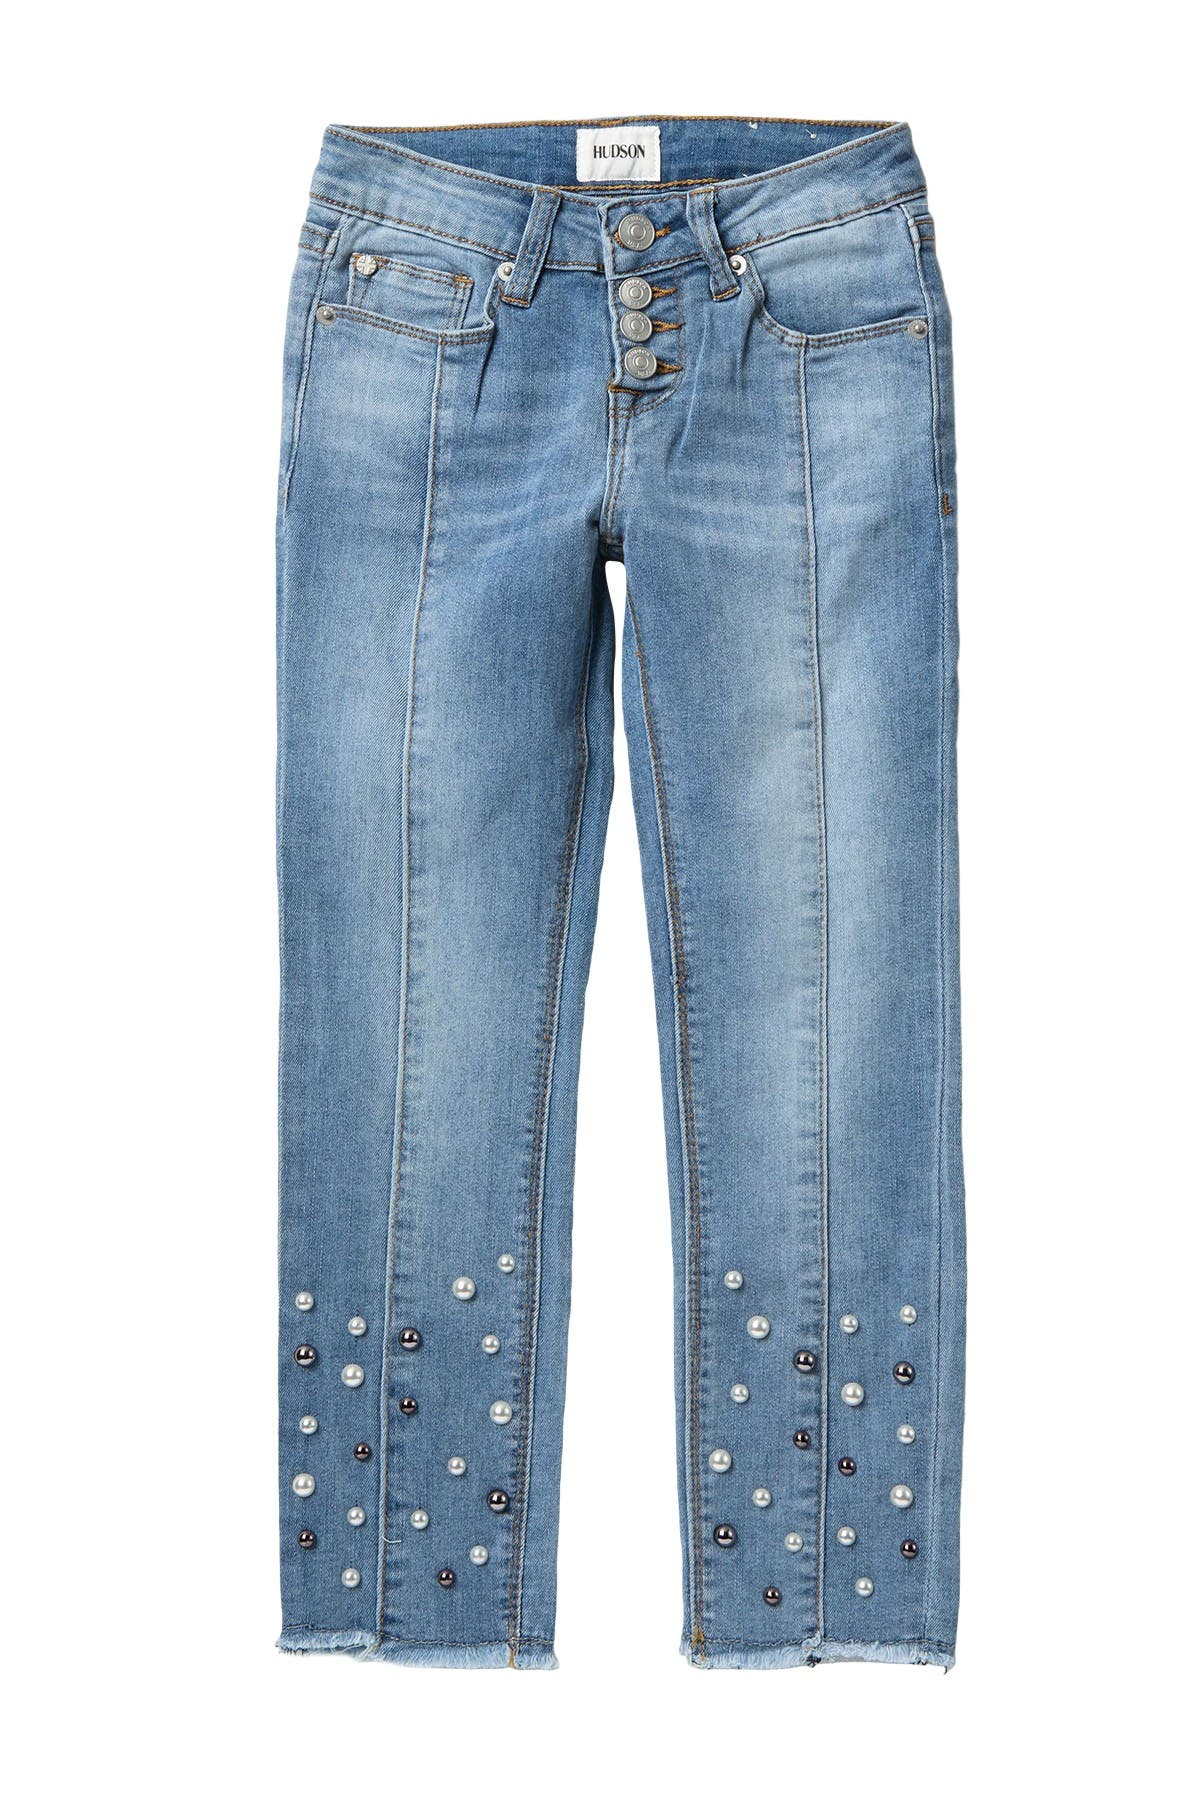 Image of HUDSON Jeans Galaxy Beaded Skinny Jeans (Big Girls)